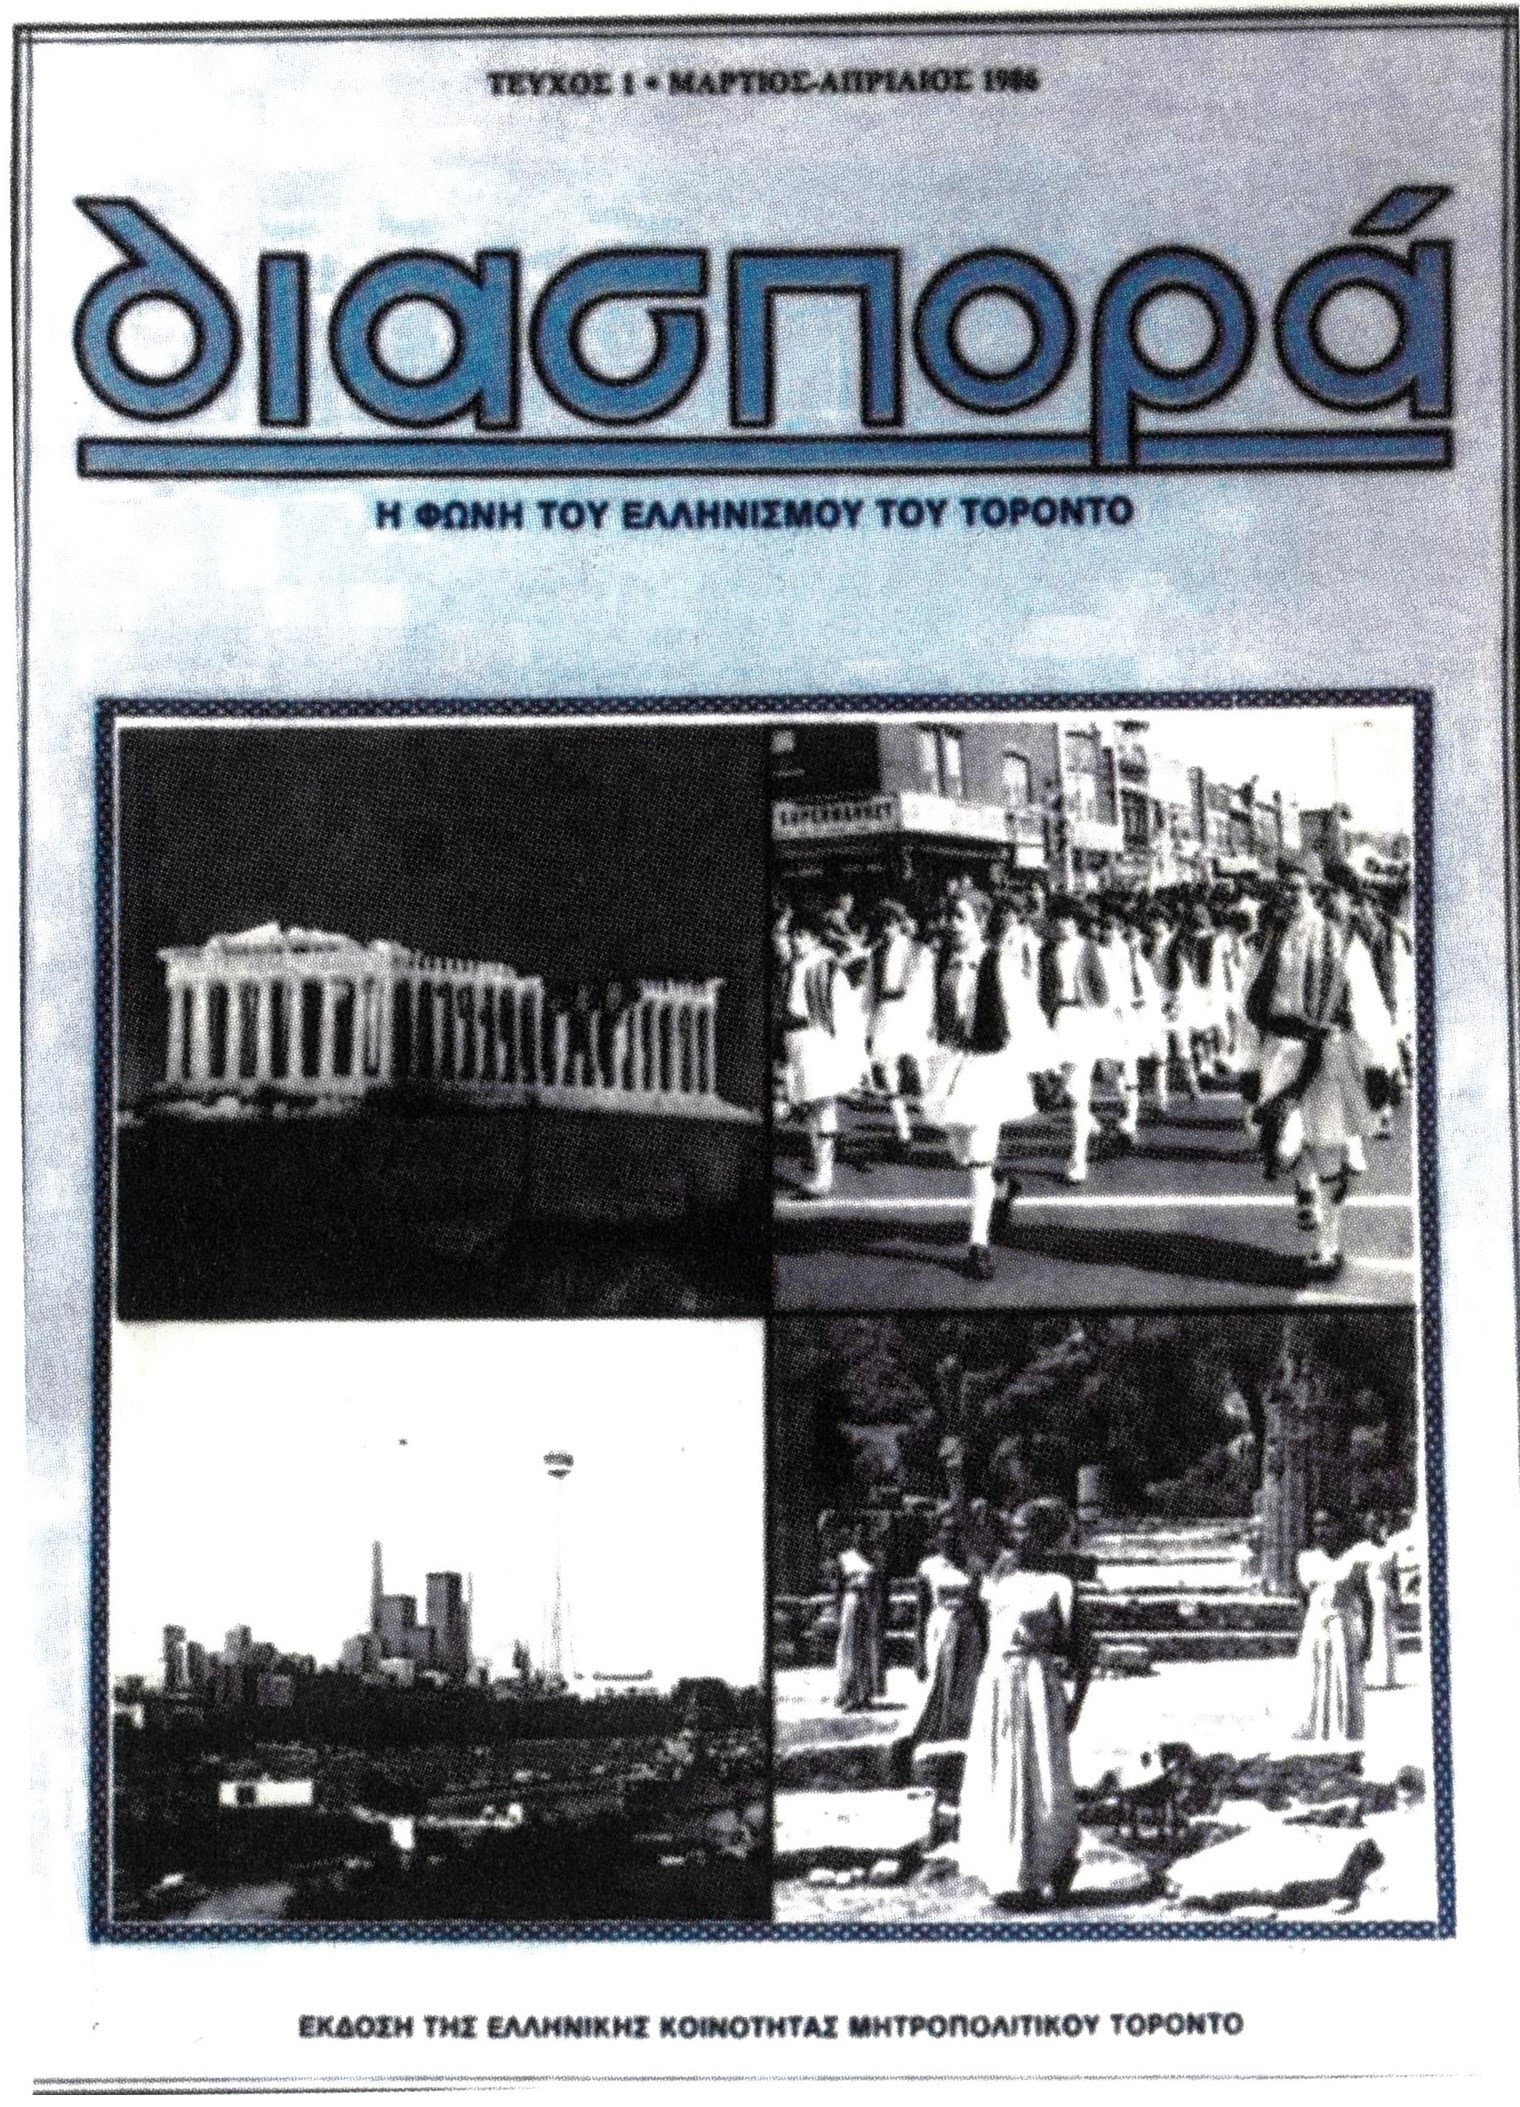 The most important publishing effort of the Greek Community of Toronto was that of the magazine DIASPORA. It was published every two months and was comparable to many professional magazines.   Source: Image by Mouratidis, M. K. 2016. What time has not erased... Toronto: Greek Community of Toronto, p. 546.